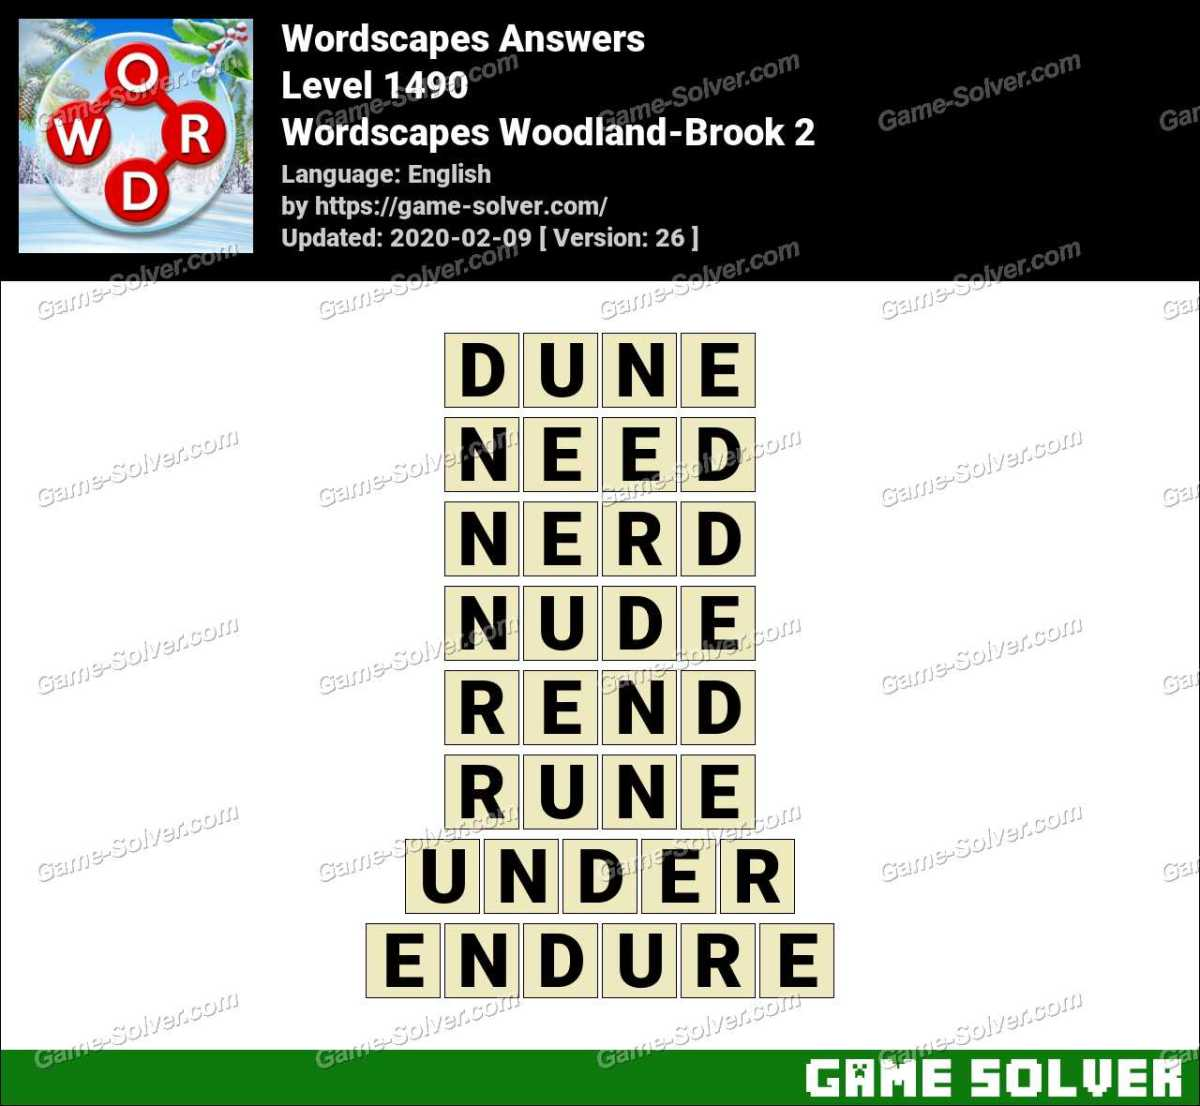 Wordscapes Woodland-Brook 2 Answers